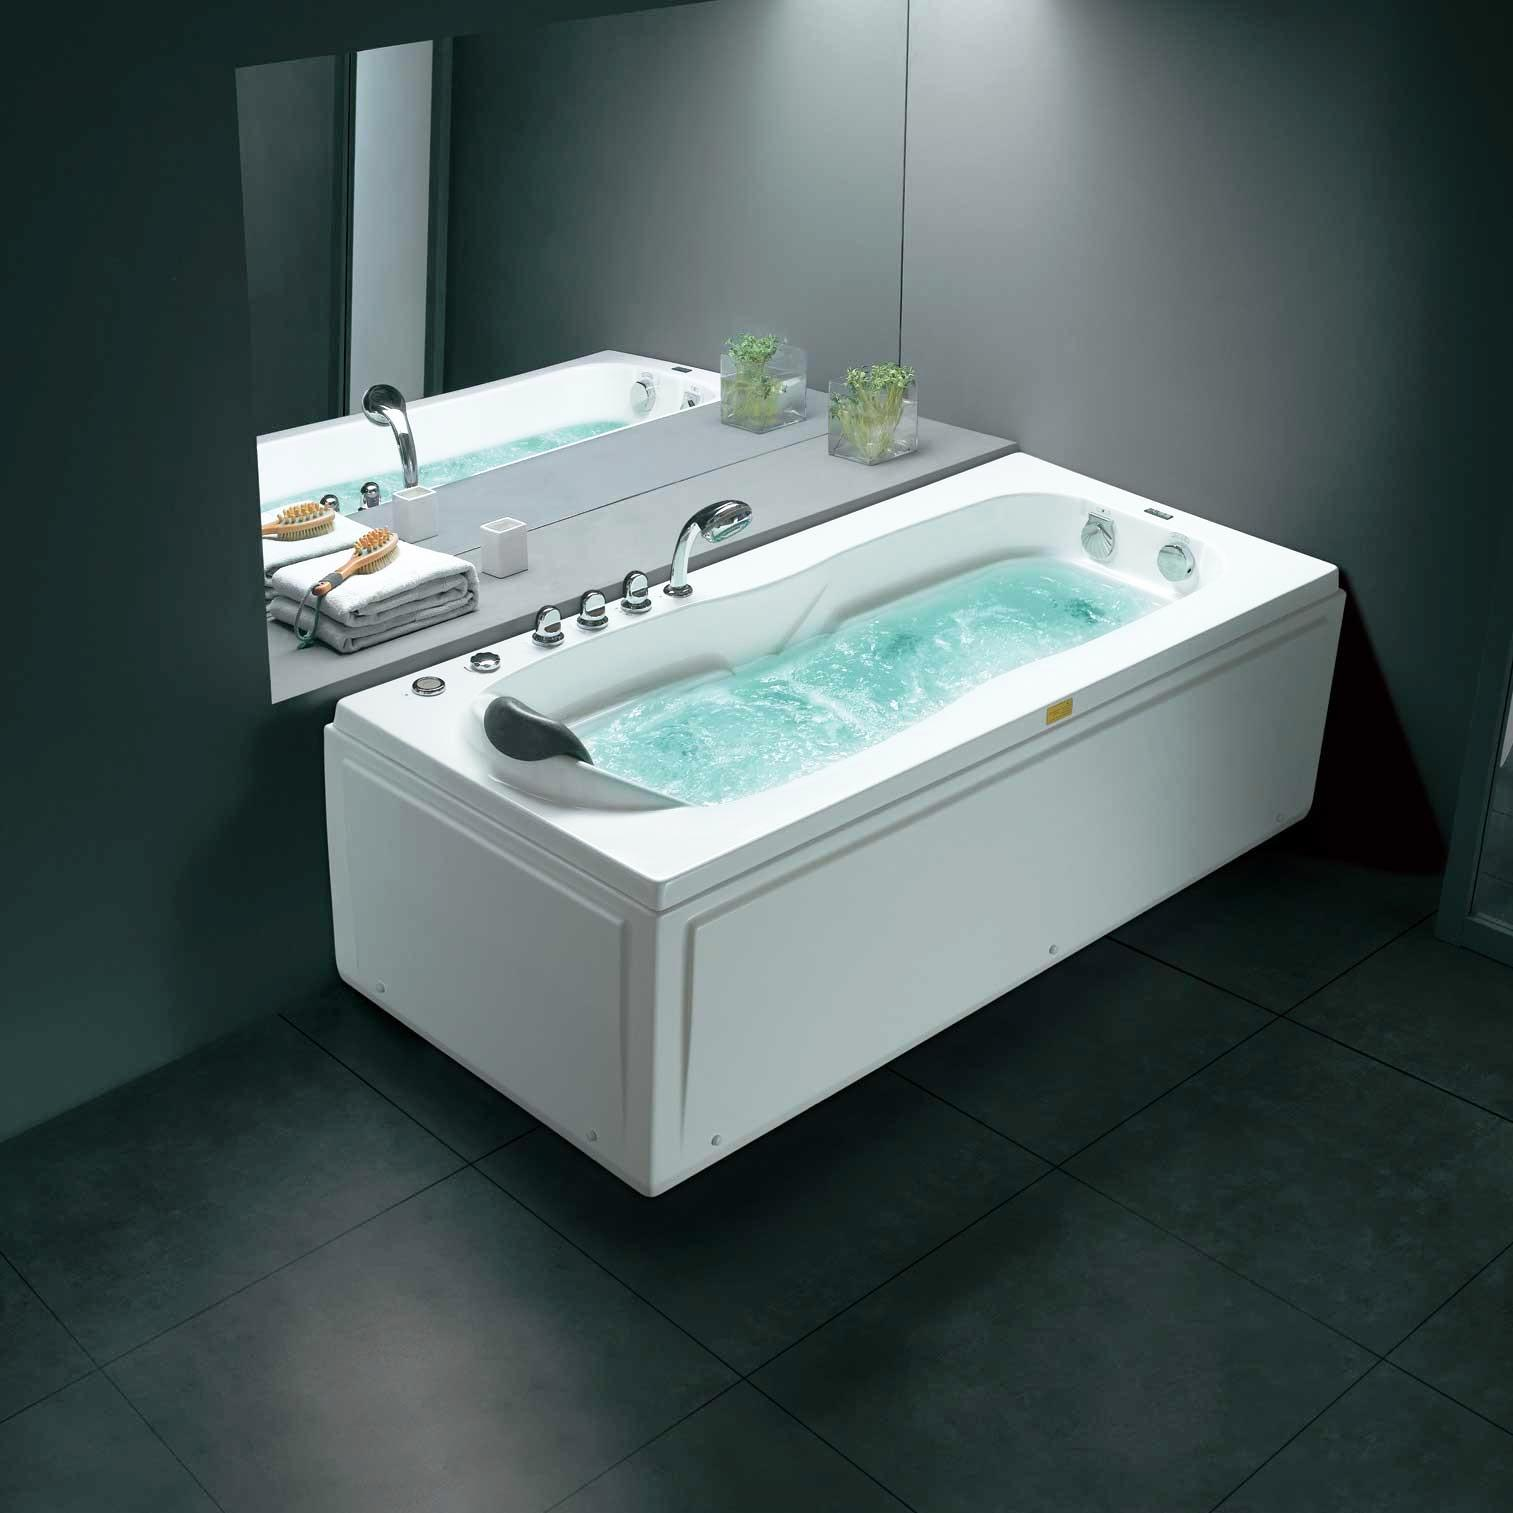 Fresh Jacuzzi Tub Faucet Gallery Of Bathtub Accessories